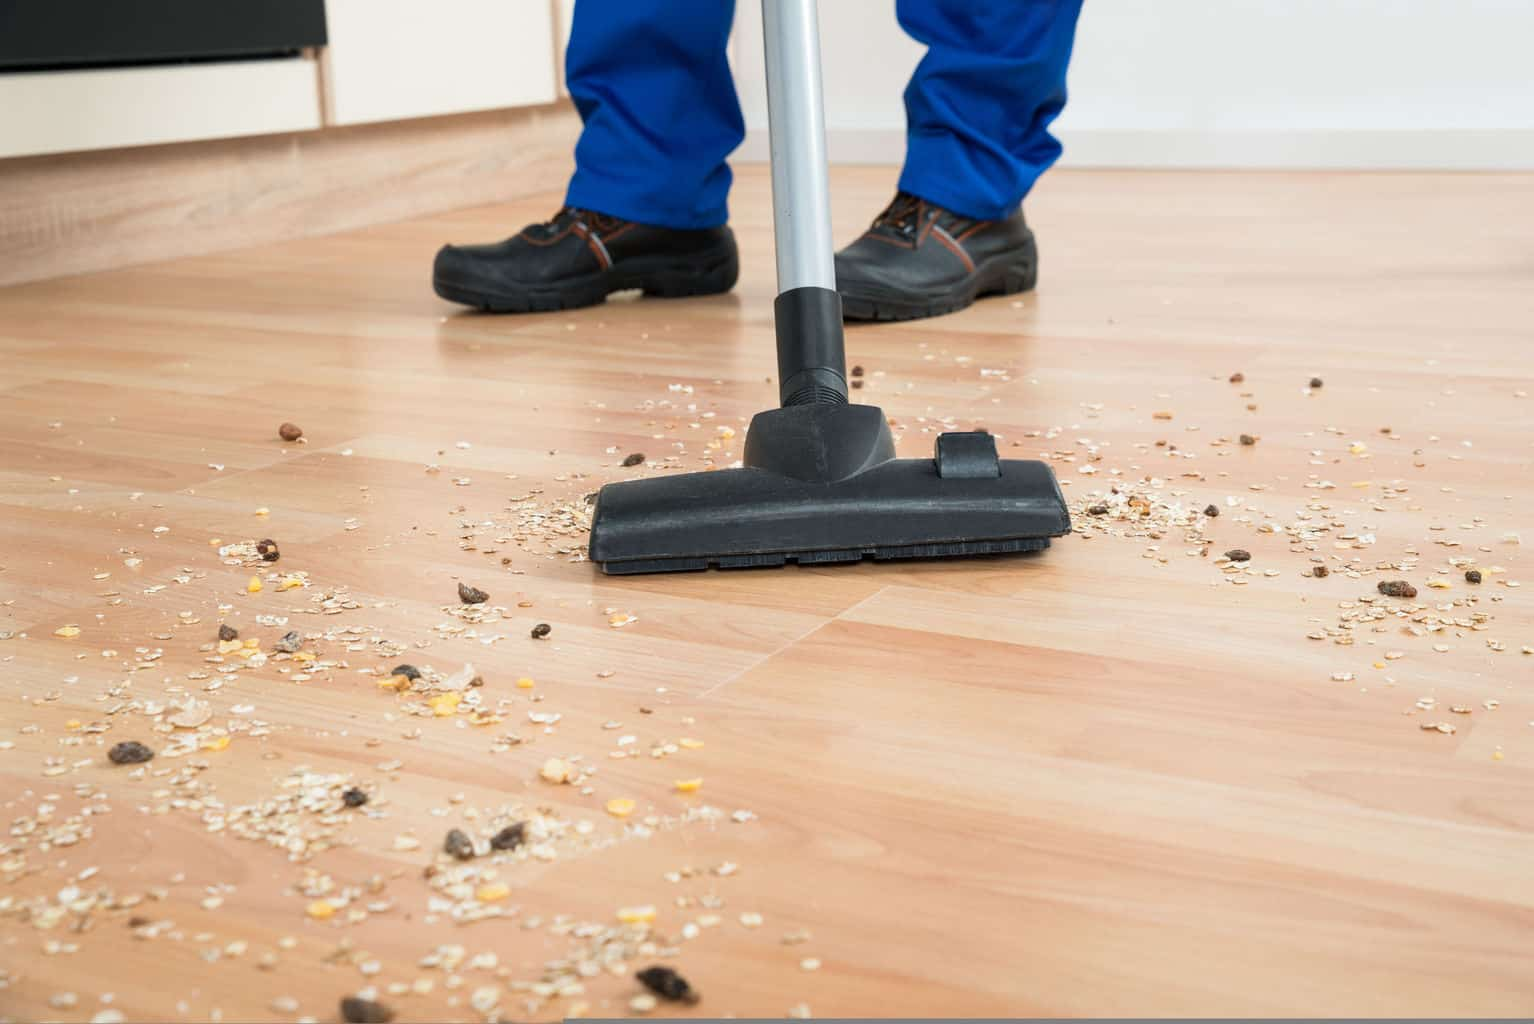 What To Clean Laminate Floors With laminate floors preventive maintenance You Can Use A Vacuum Cleaner To Suck Out The Dust And Hairs Before You Mop The Floor When Doing This Only Use The Suction Do Not Attach The Beater Bar